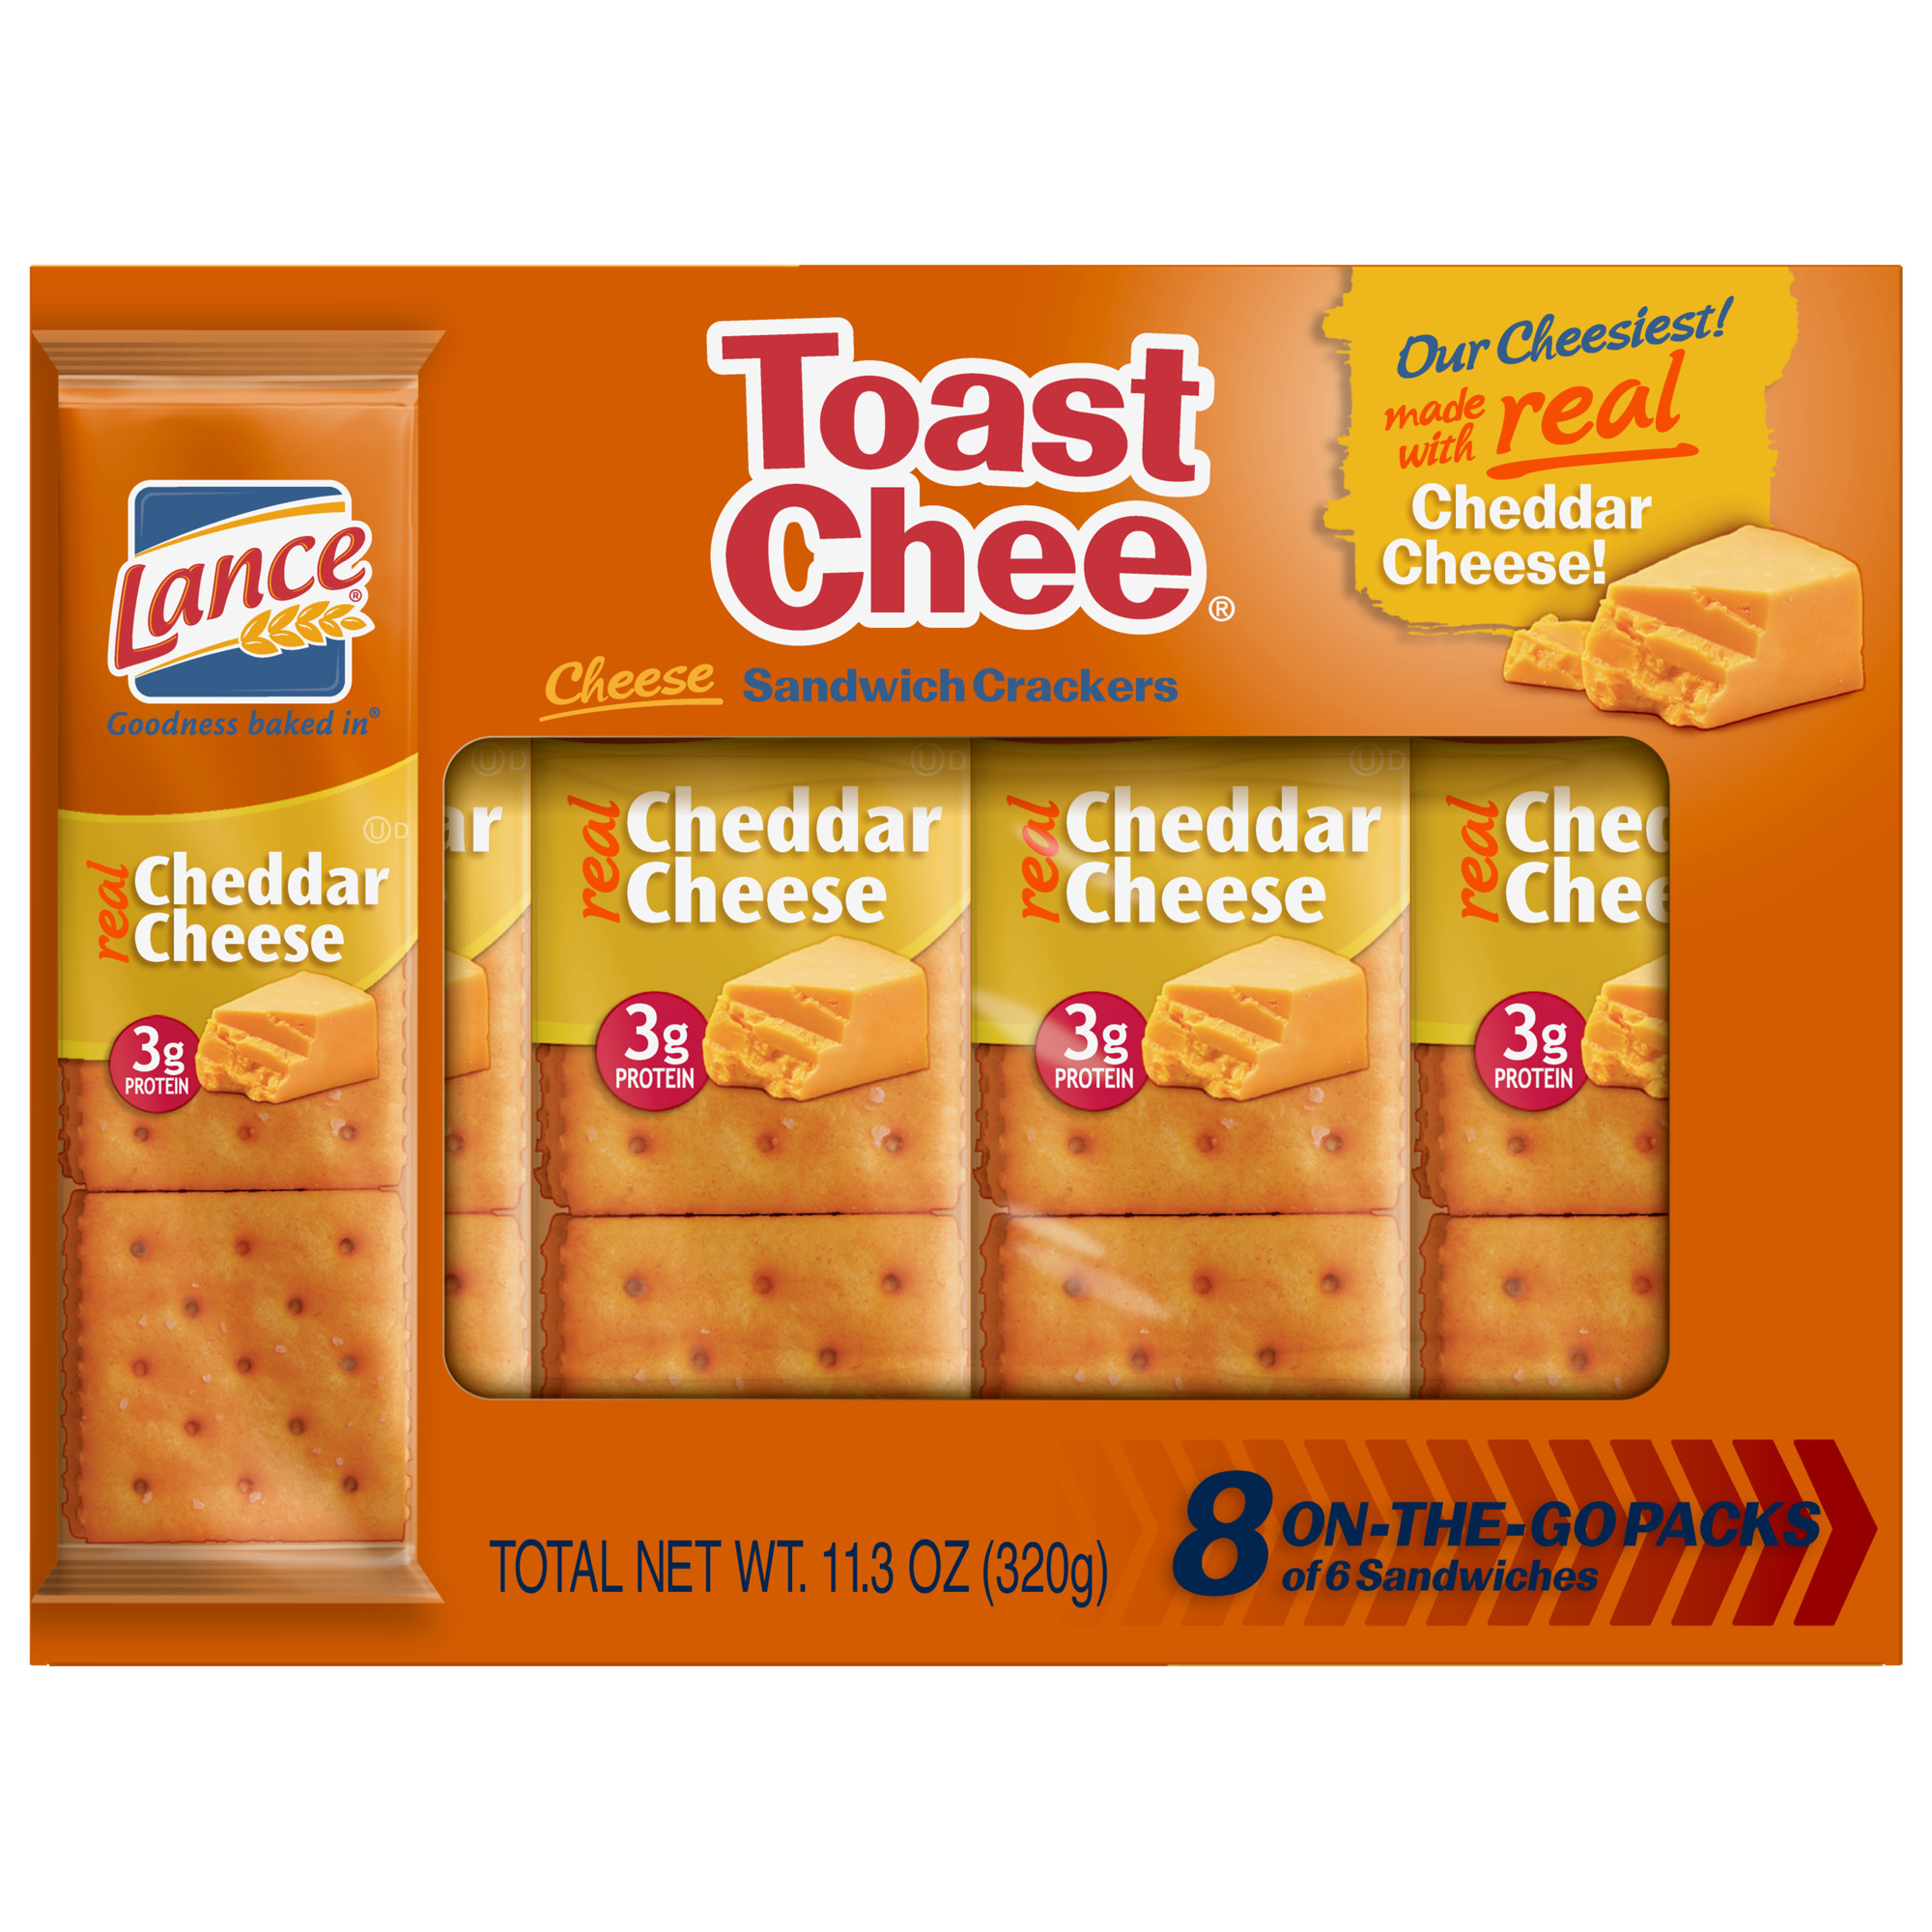 Lance Sandwich Crackers, Toastchee Cheddar, 8 Ct